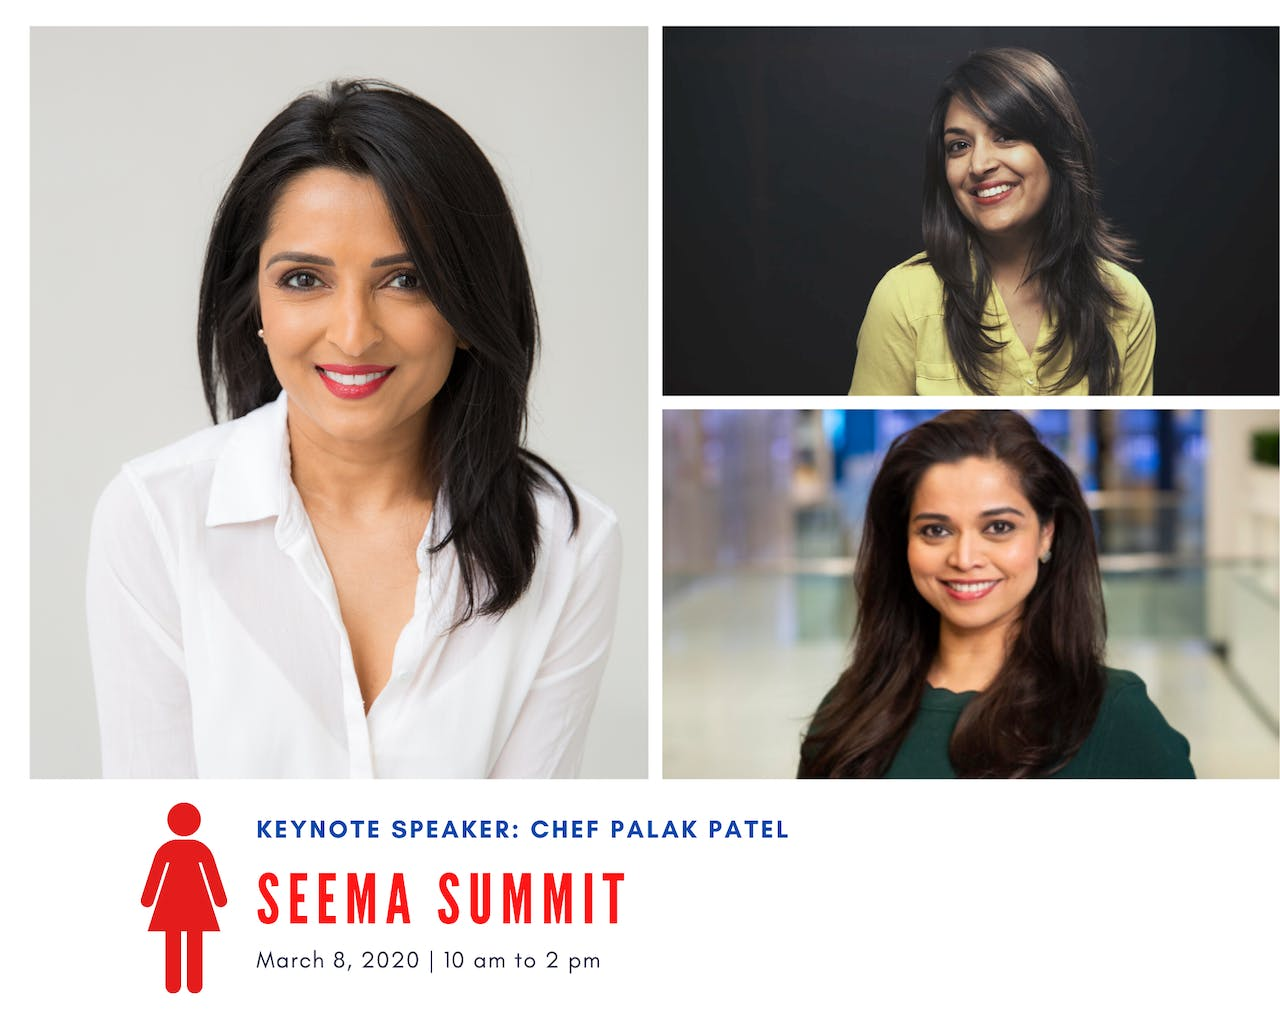 The inaugural's SEEMA SUMMIT is about women who are breaking barriers and living life to the fullest. So on March 8th, we'll be hosting a first-of-its-kind gathering designed to do just that. The event will be held in New York, NY on 03.08.2020, on International Women's Day